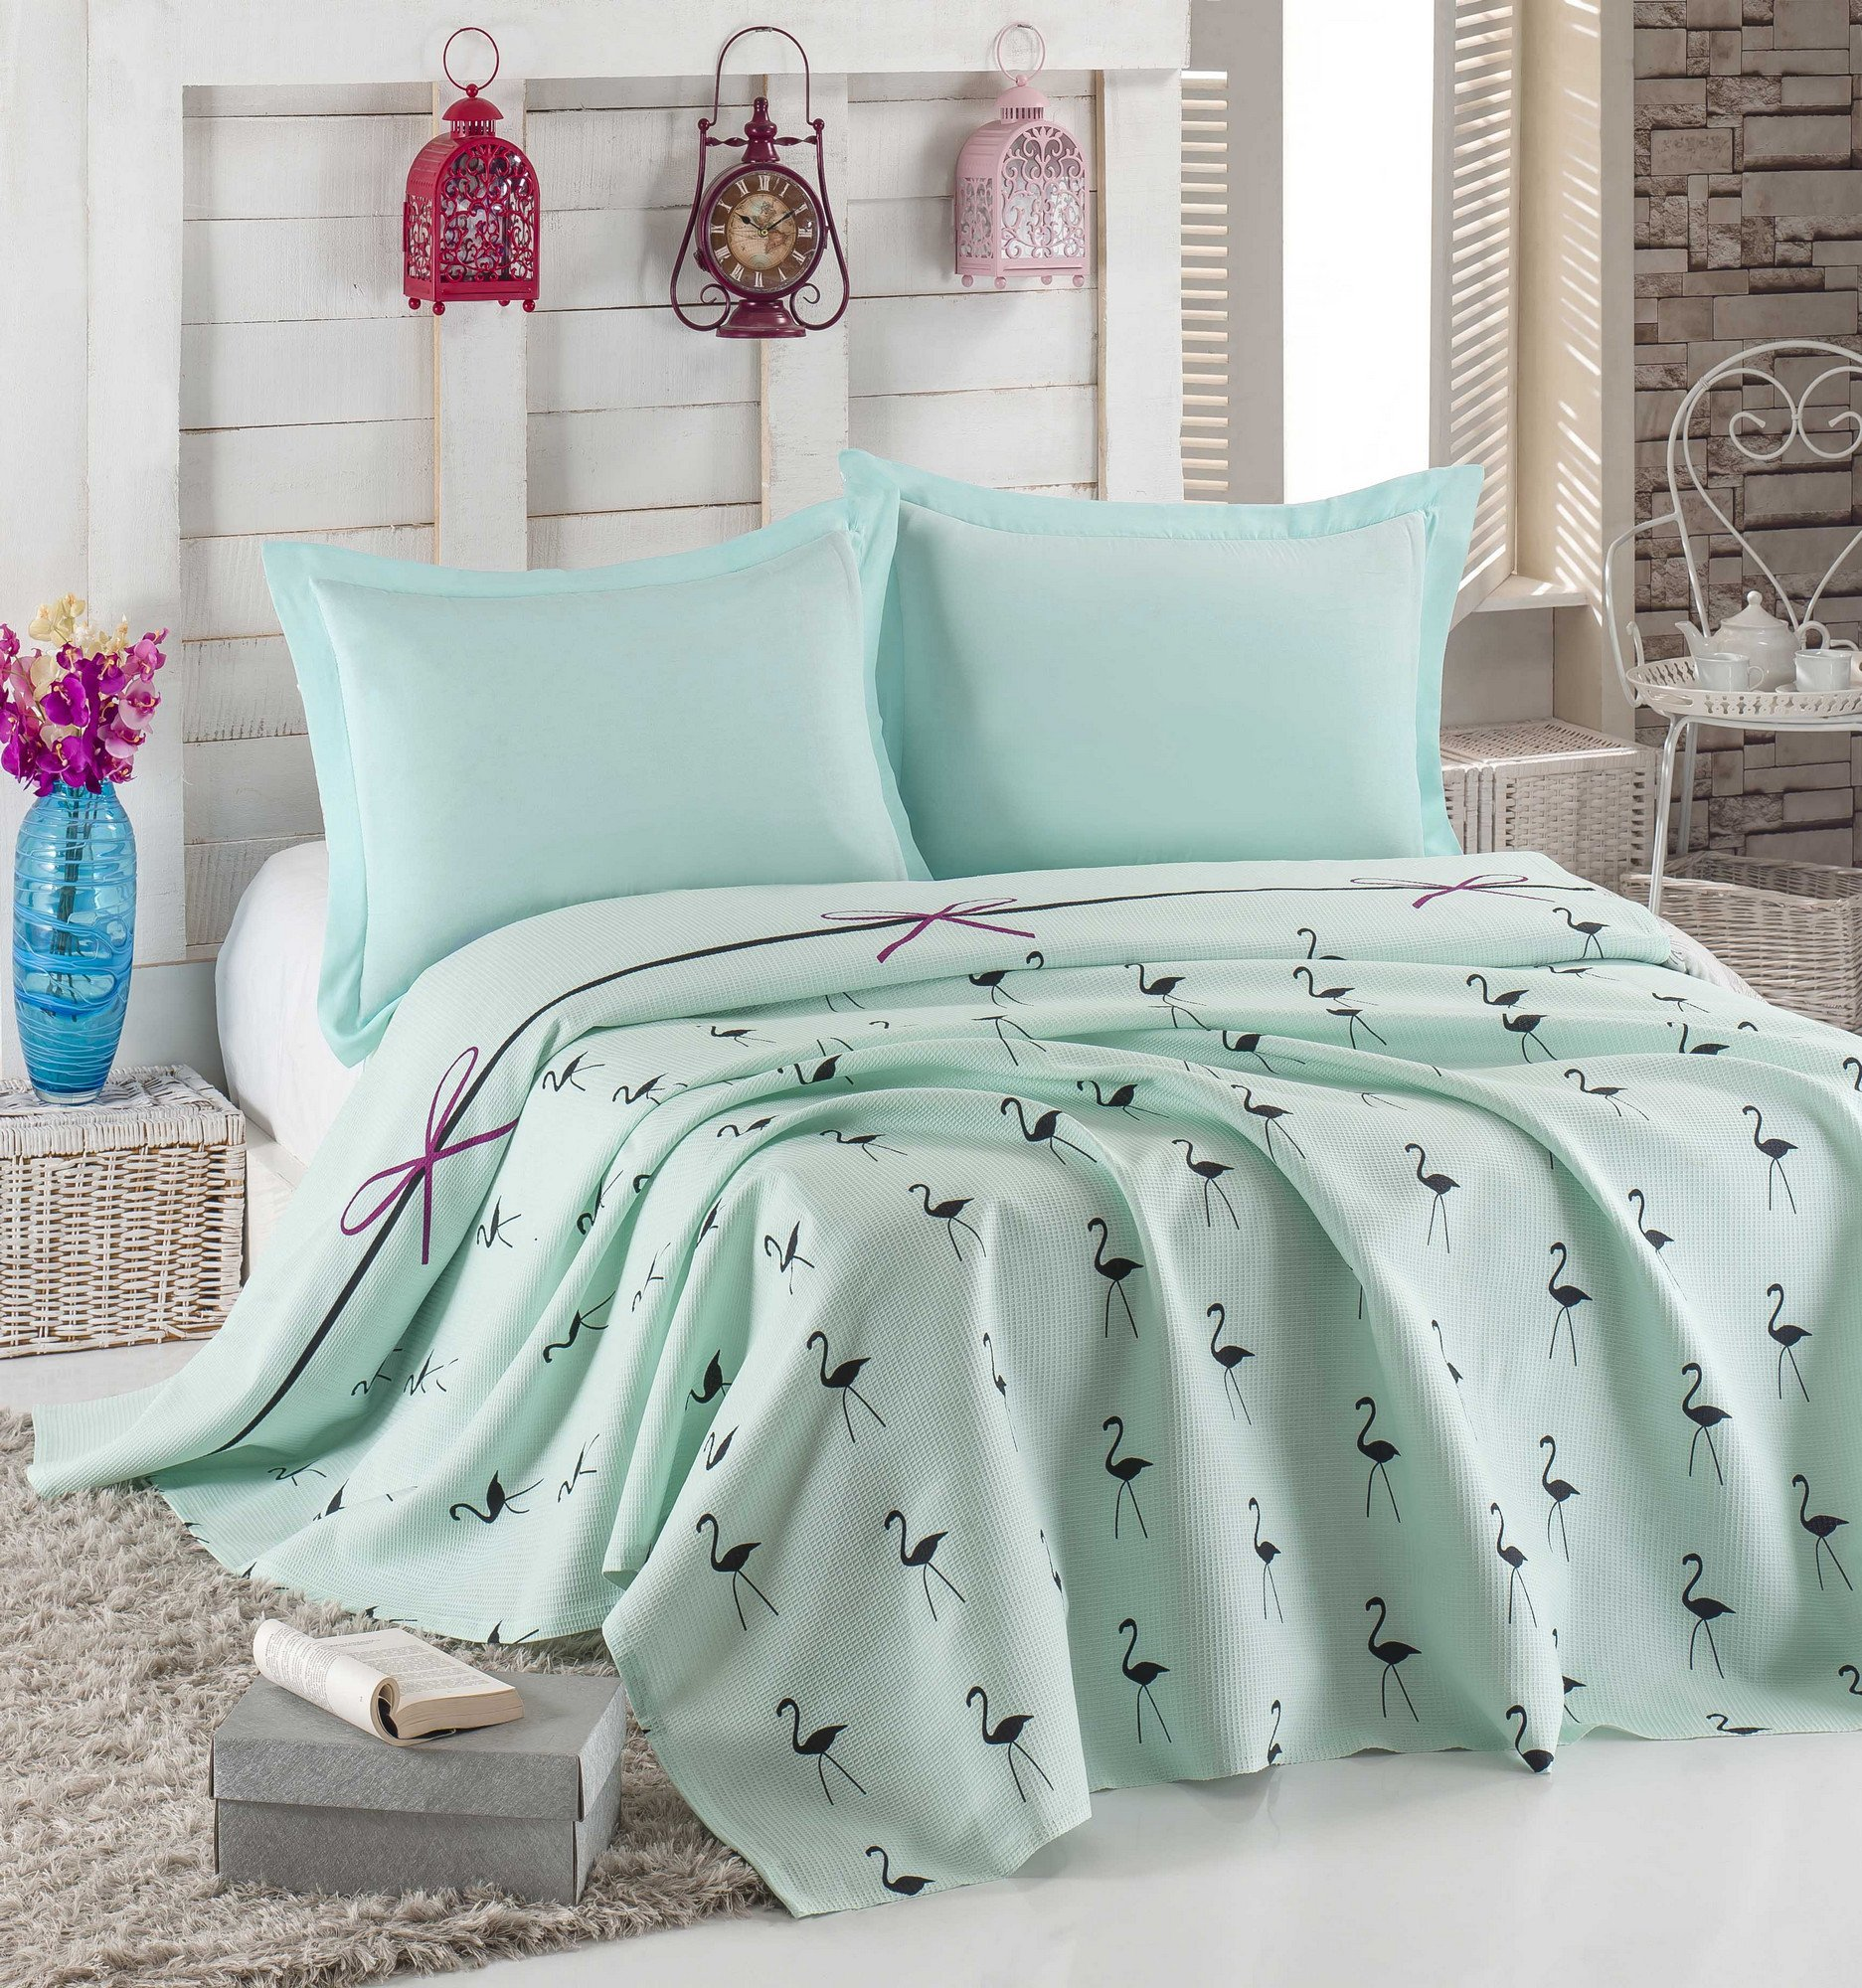 LaModaHome Animals Coverlet, 100% Cotton - Black Flamingos on Green, Line, Bowtie - Size (94.5'' x 86.6'') for Queen and Double Bed